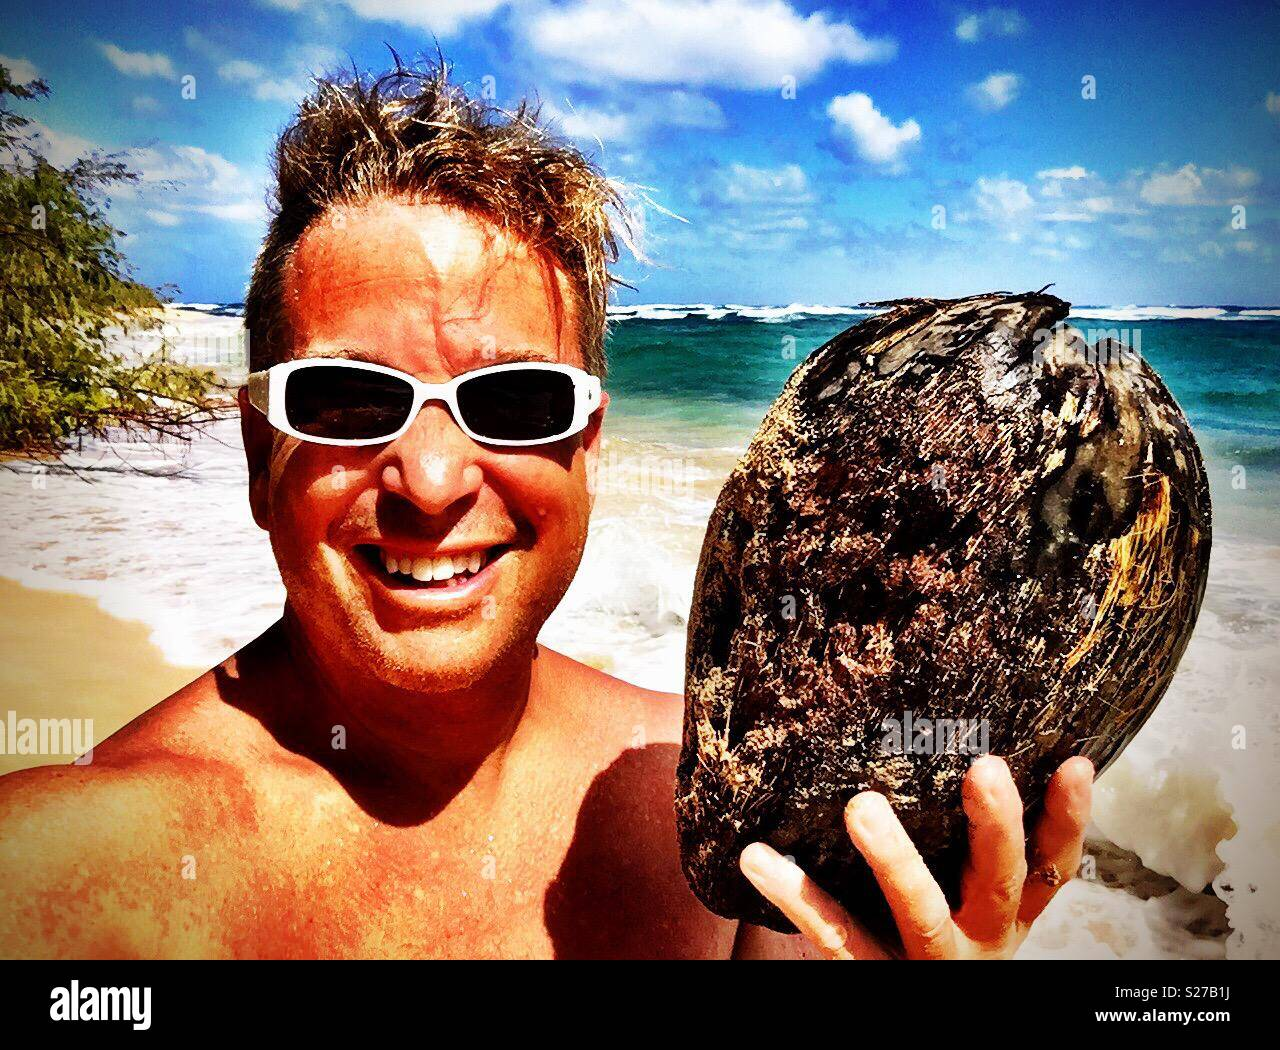 Gleeful tanned smiling man with white sunglasses beholds the coconut gift from the sea - Stock Image